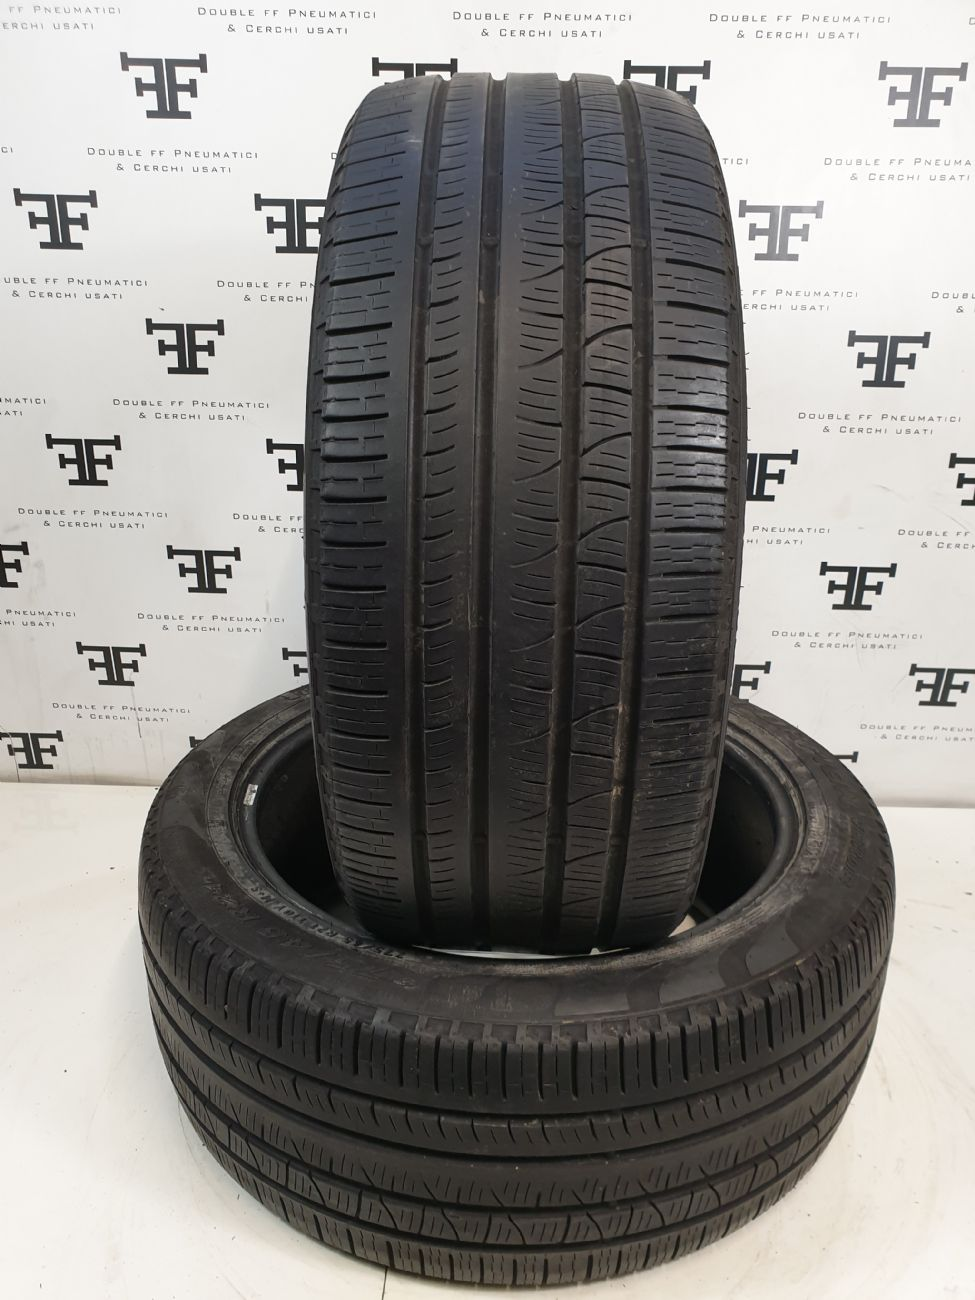 Pneumatici 275 45 R21 110 Y PIRELLI SCORPION VERDE ALL SEAS 4 seasons usati 140€